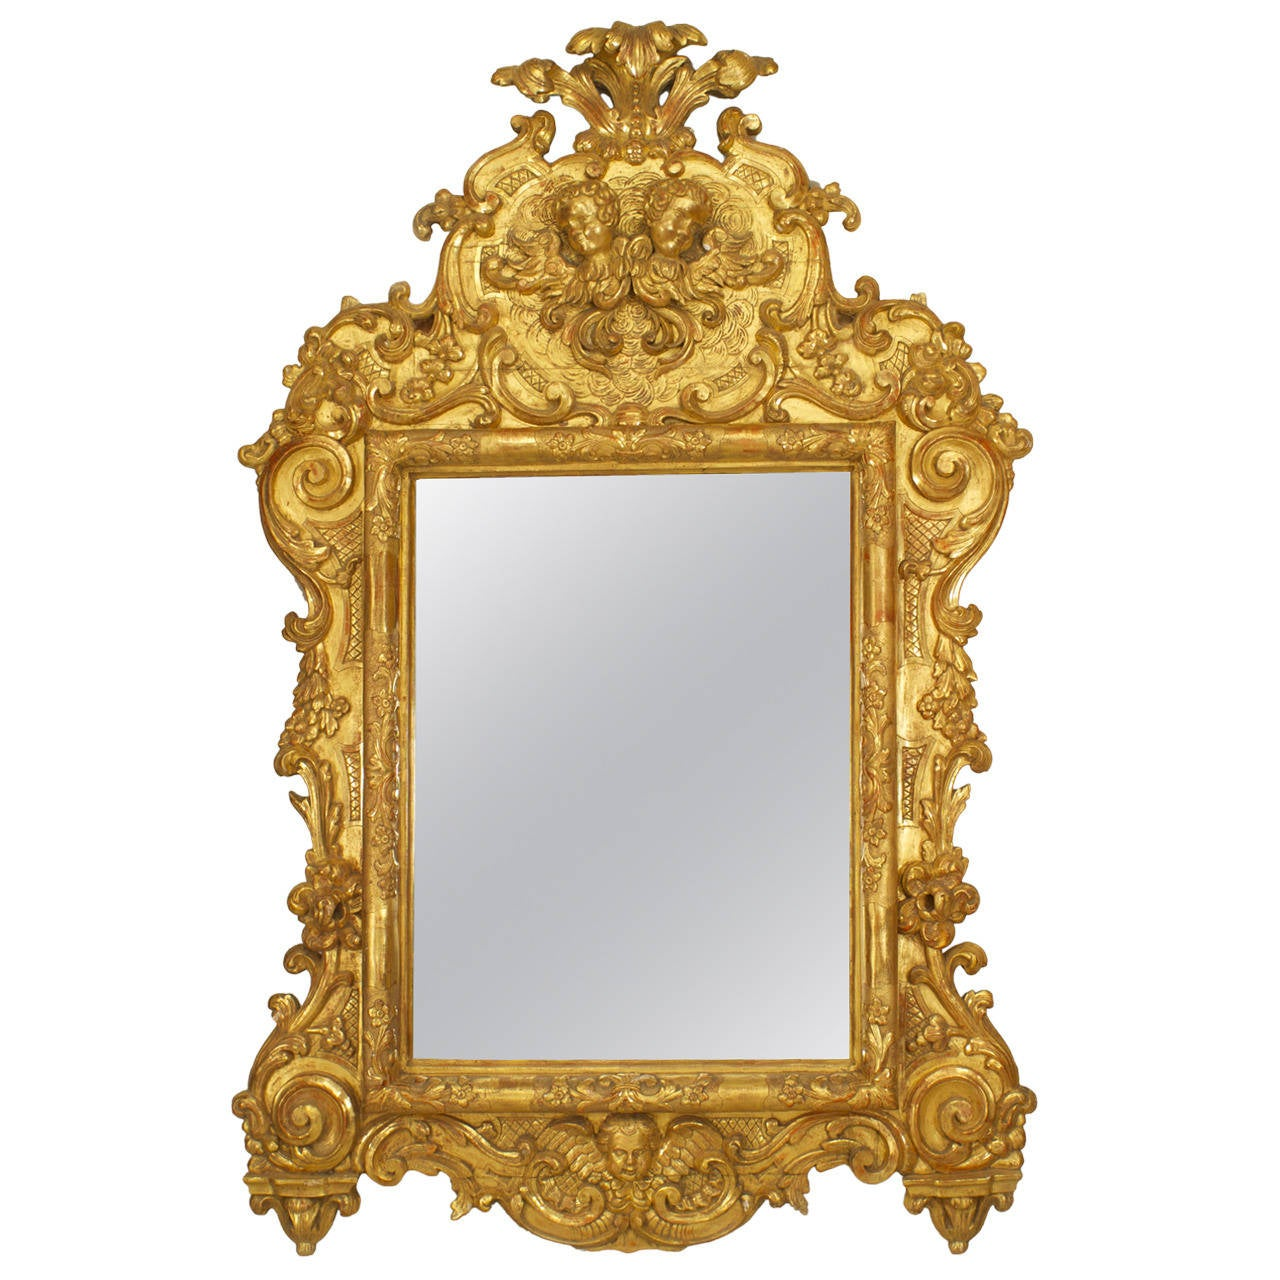 Large 18th Century Italian Rococo Carved Giltwood Mirror